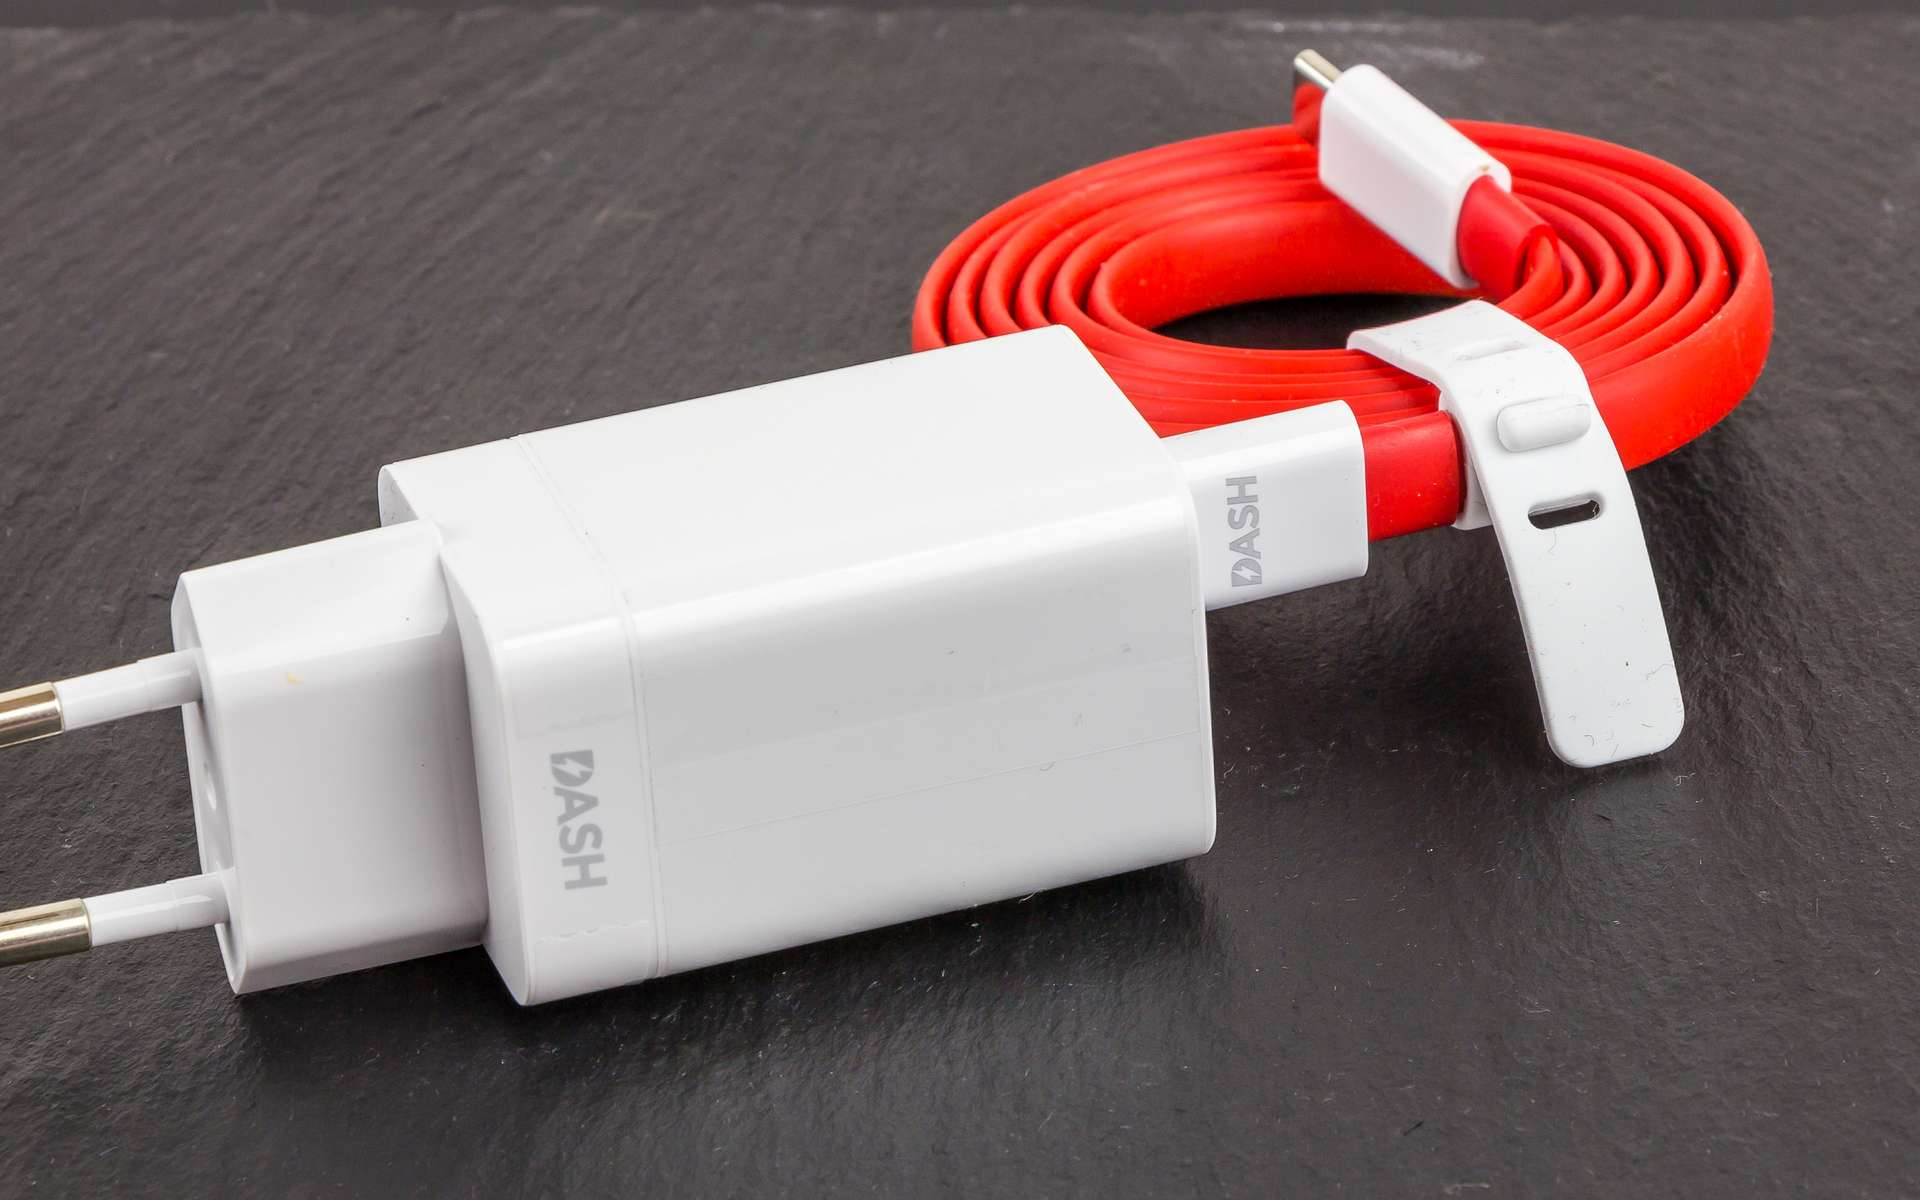 Dash Charge pour OnePlus 5. © Raimond Spekking, Wikimedia Commons, CC by-sa 4.0